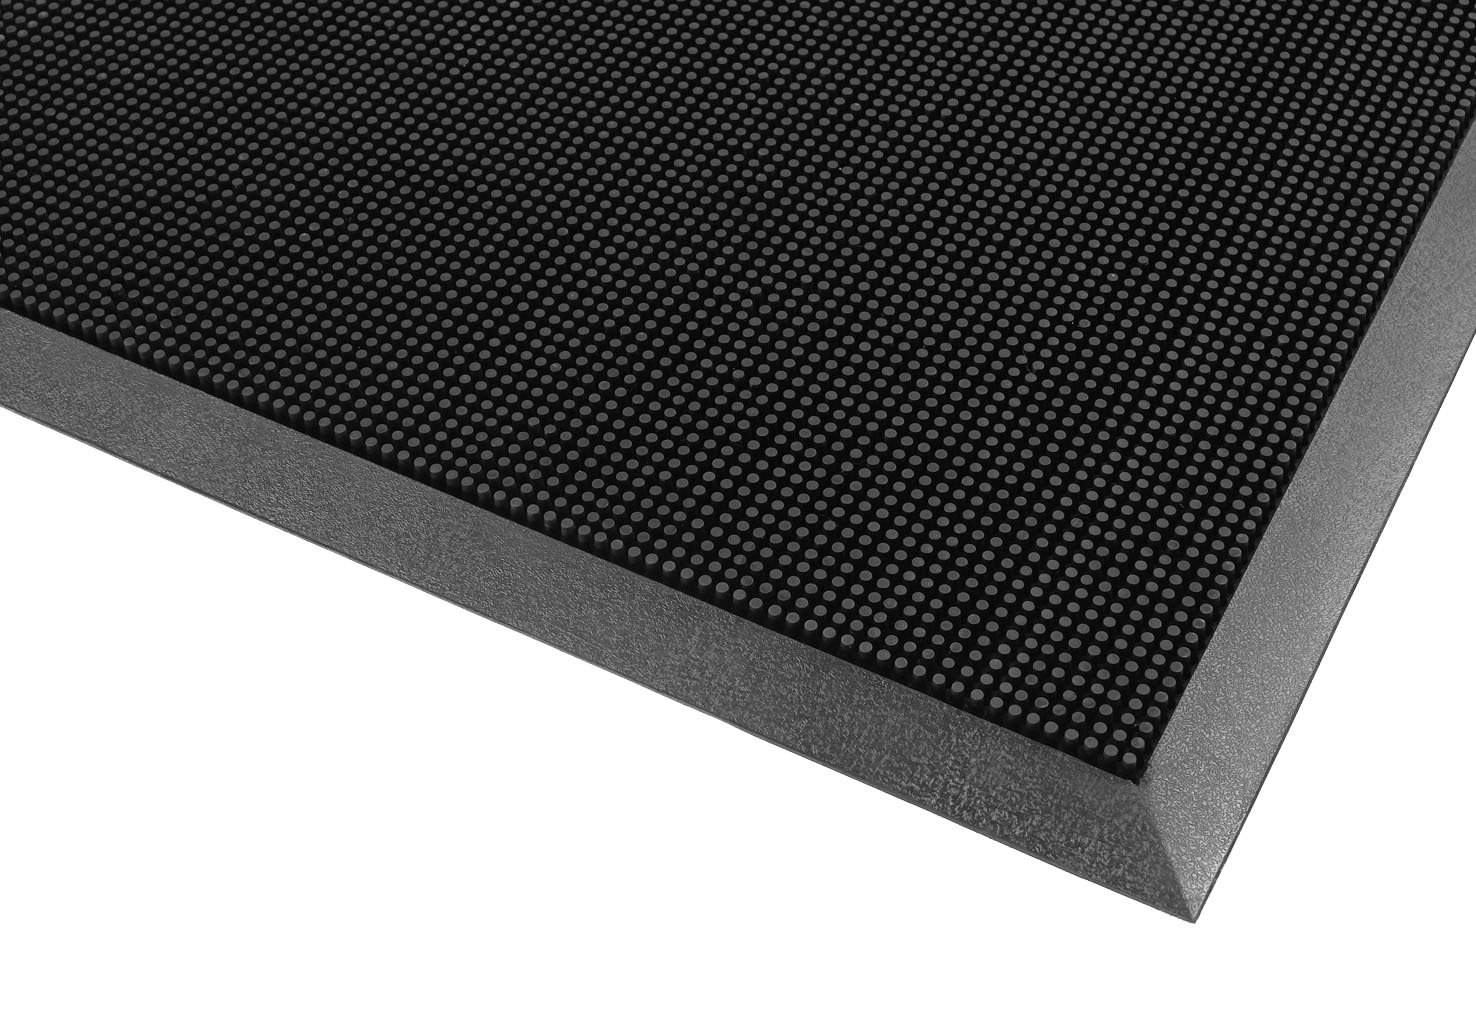 Notrax 345 Rubber Brush Styrene-Butadiene Rubber Entrance Mat, For Construction Traffic Area and Municipal Buildings, 24'' Width x 32'' Length x 5/8'' Thickness, Black by NoTrax Floor Matting